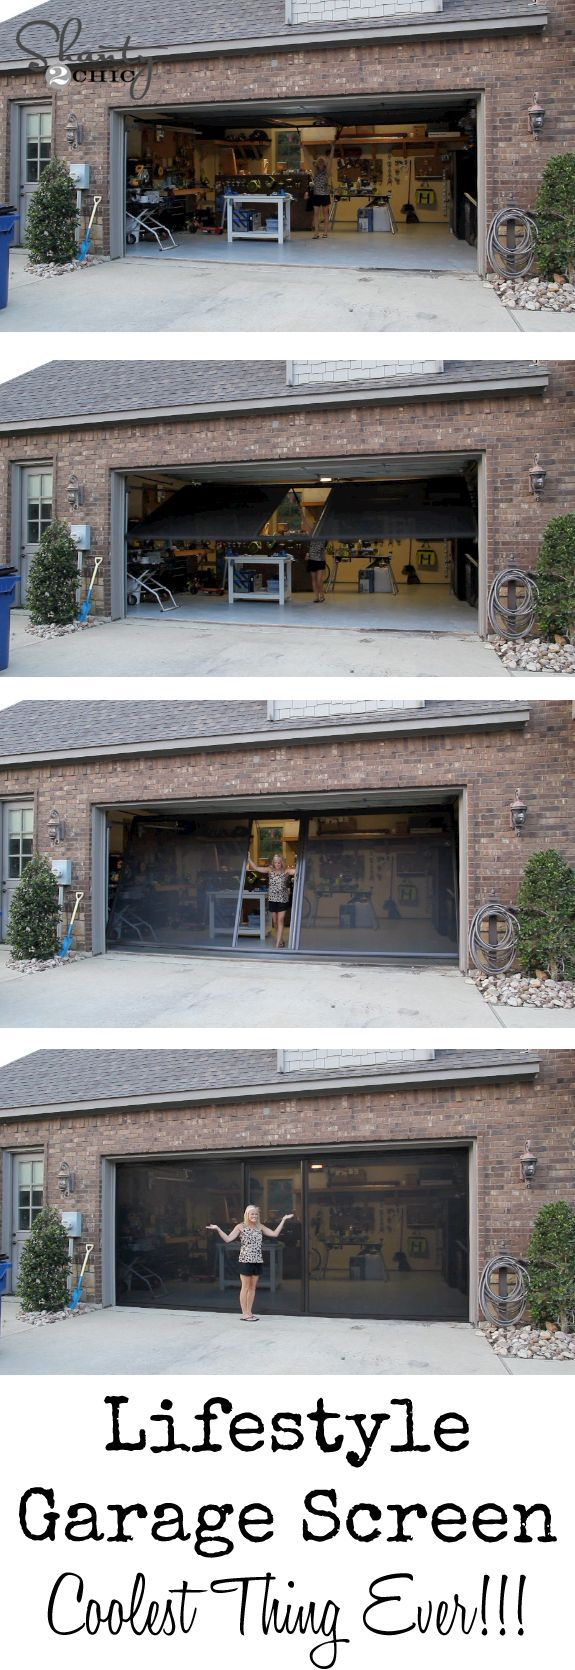 Screen doors for garage door opening - Check Out My New Garage Screen So Awesome